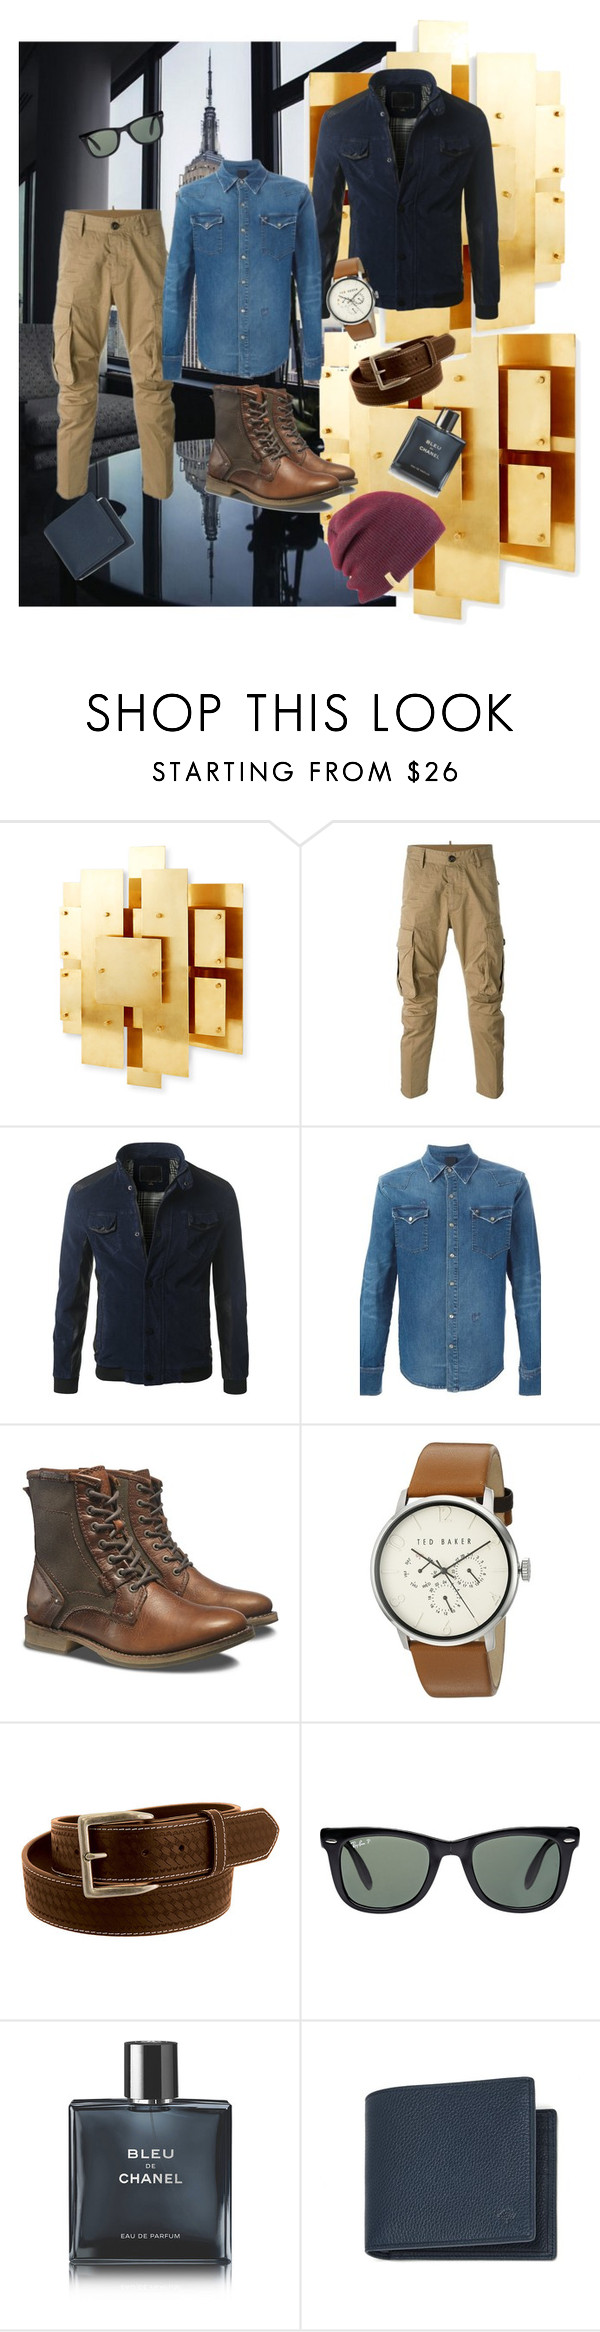 """""""men's street style"""" by samanthaodyssa ❤ liked on Polyvore featuring Jonathan Adler, Dsquared2, Caterpillar, Ted Baker, Wrangler, Ray-Ban, Chanel, Mulberry, Coal and men's fashion"""